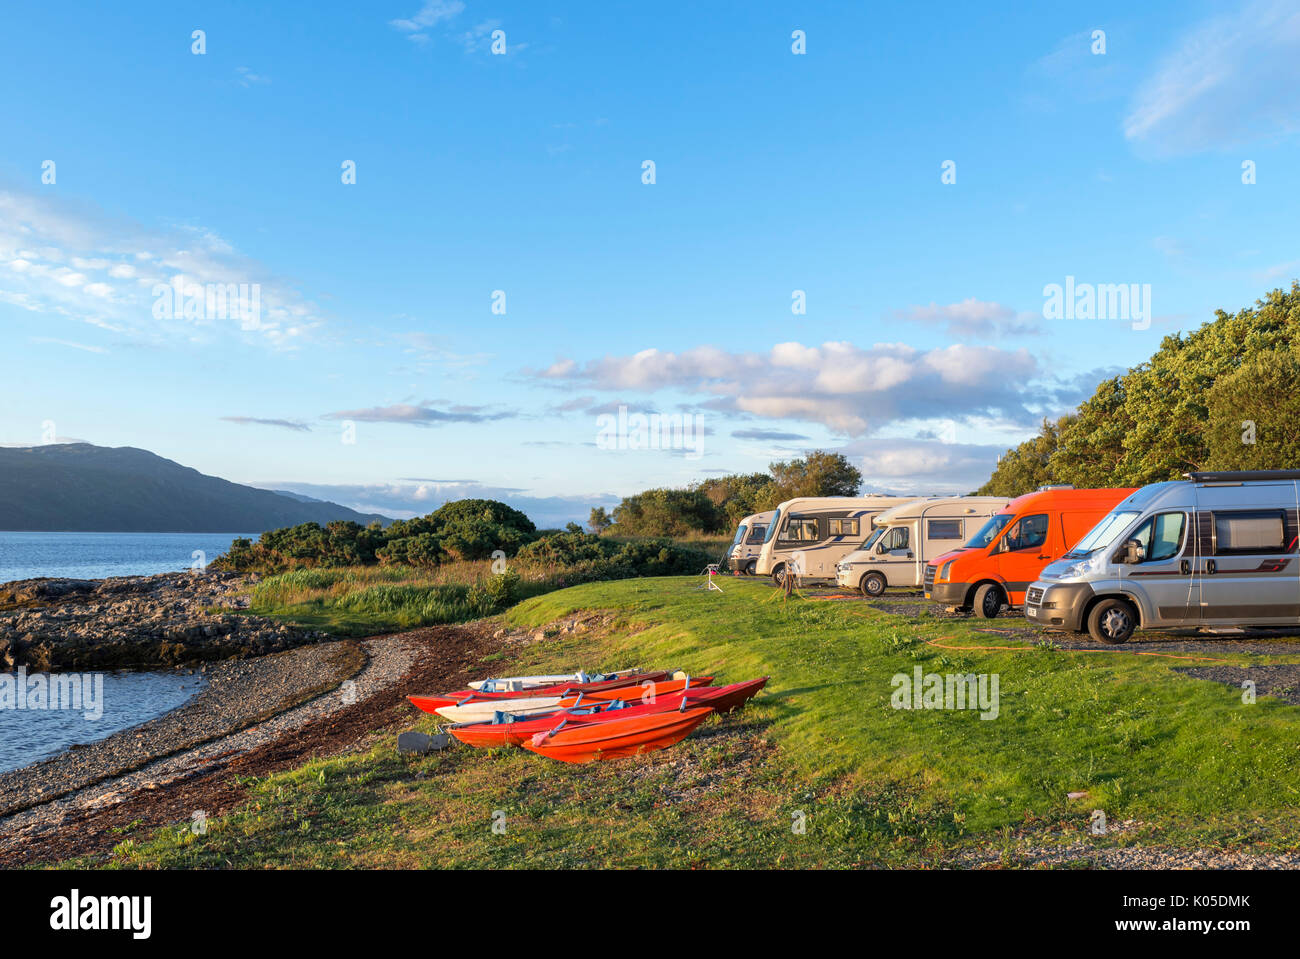 Campervans at a campsite in Craignure at sunset, Isle of Mull, Argyll and Bute, Scotland, UK - Stock Image